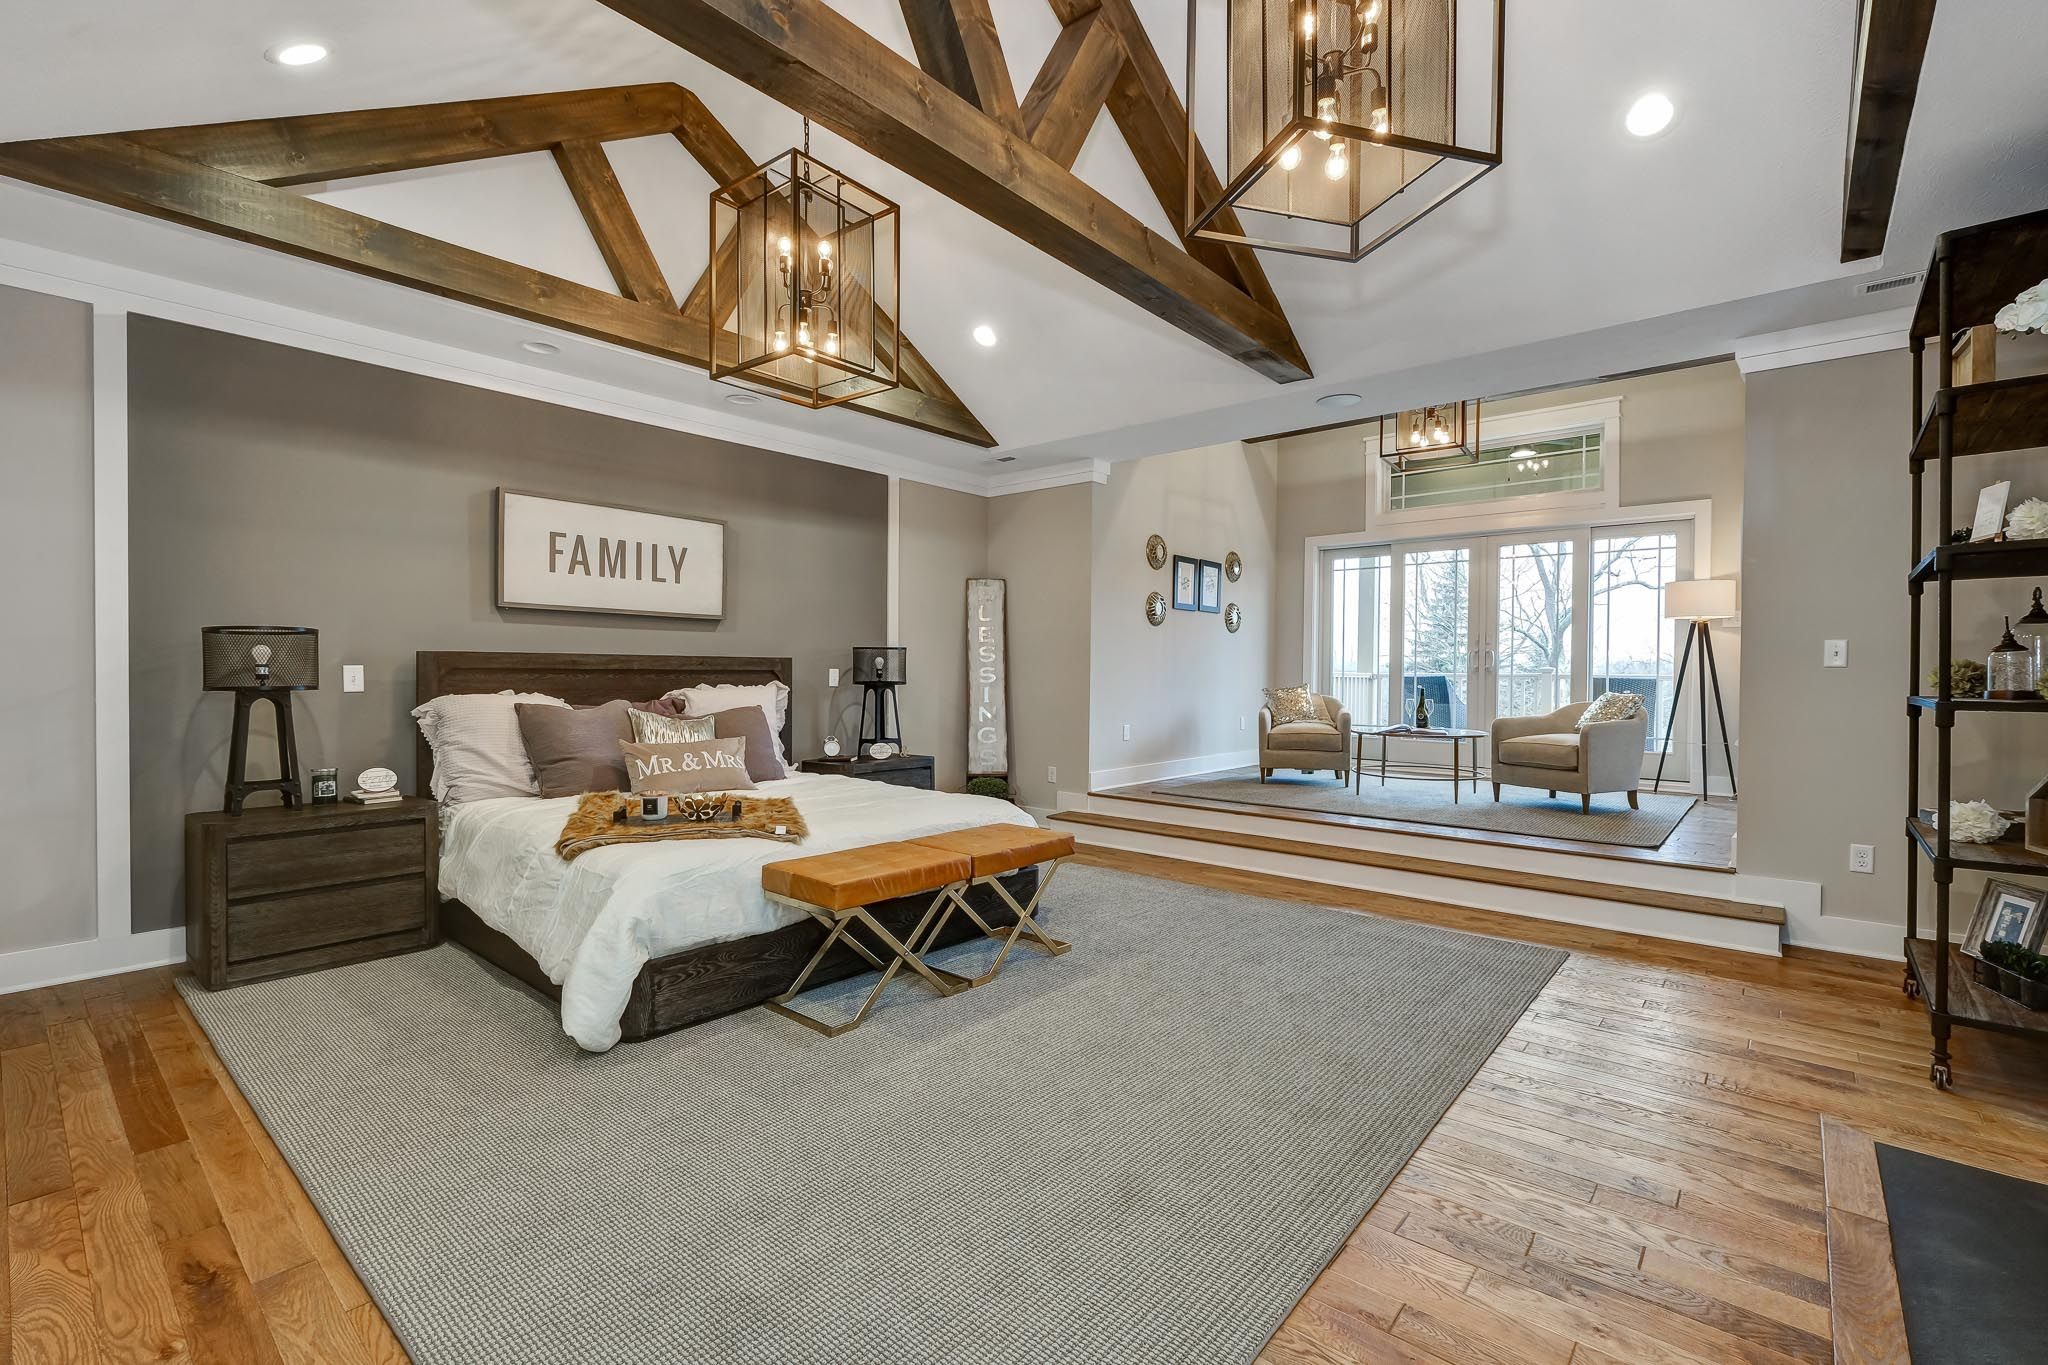 Bedroom featured in the Austin By Infinity Custom Homes in Pittsburgh, PA